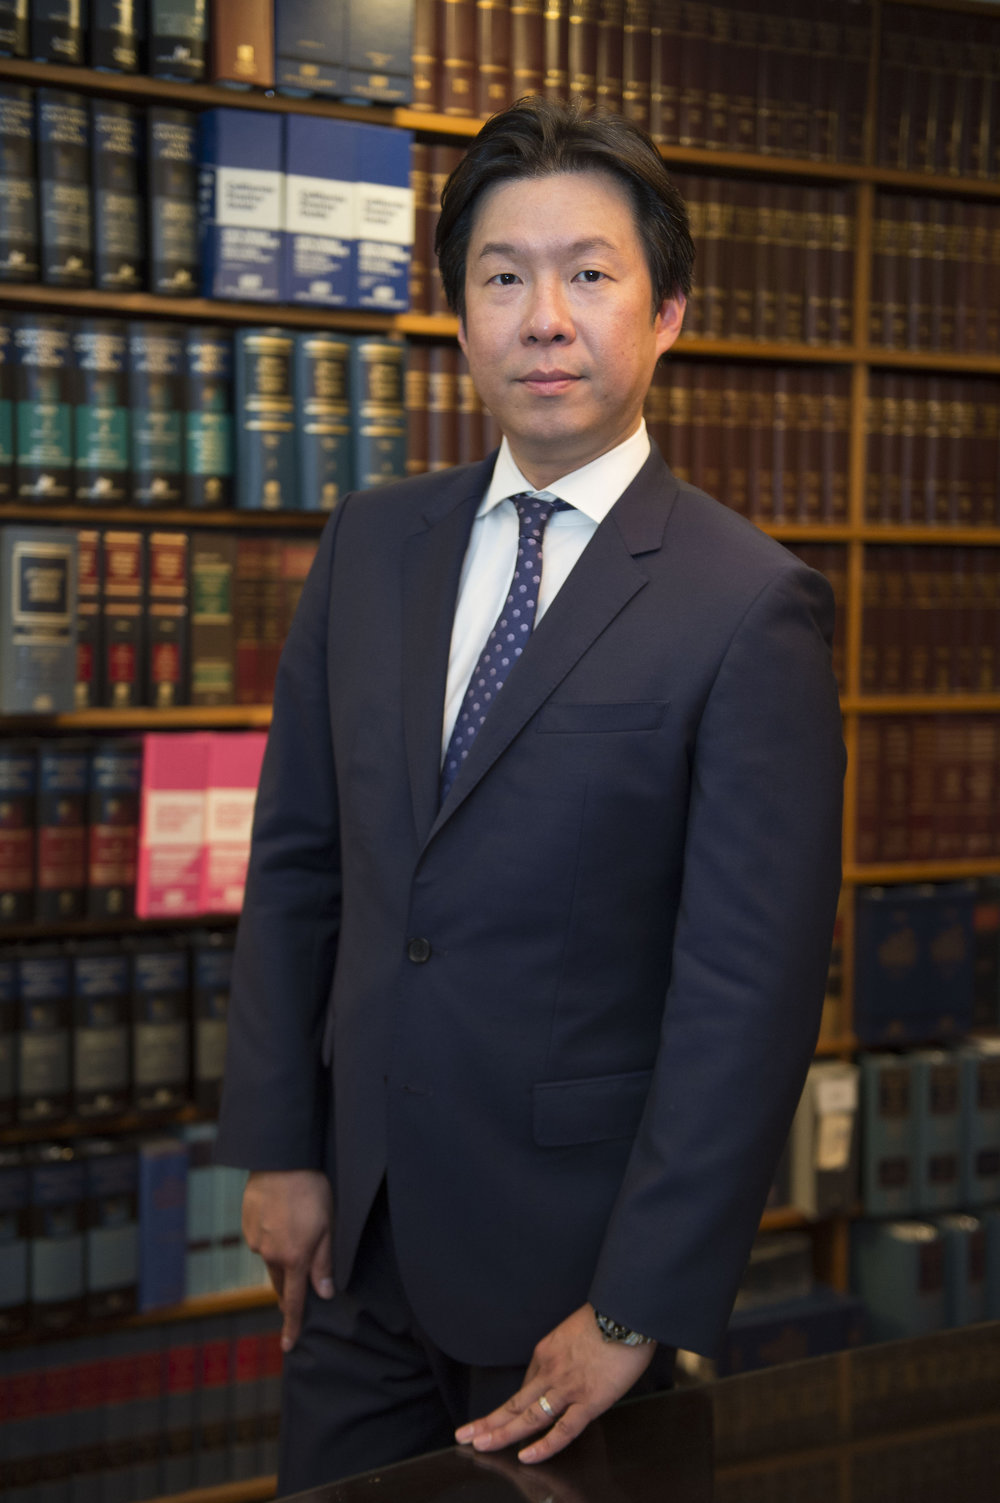 Not only has Acer Chiang been defending peoples' rights in criminal courts. Since becoming a member of the California Bar Association, Mr. Chiang has been involved in numerous civil litigation, primarily in the area of personal injury and business disputes.